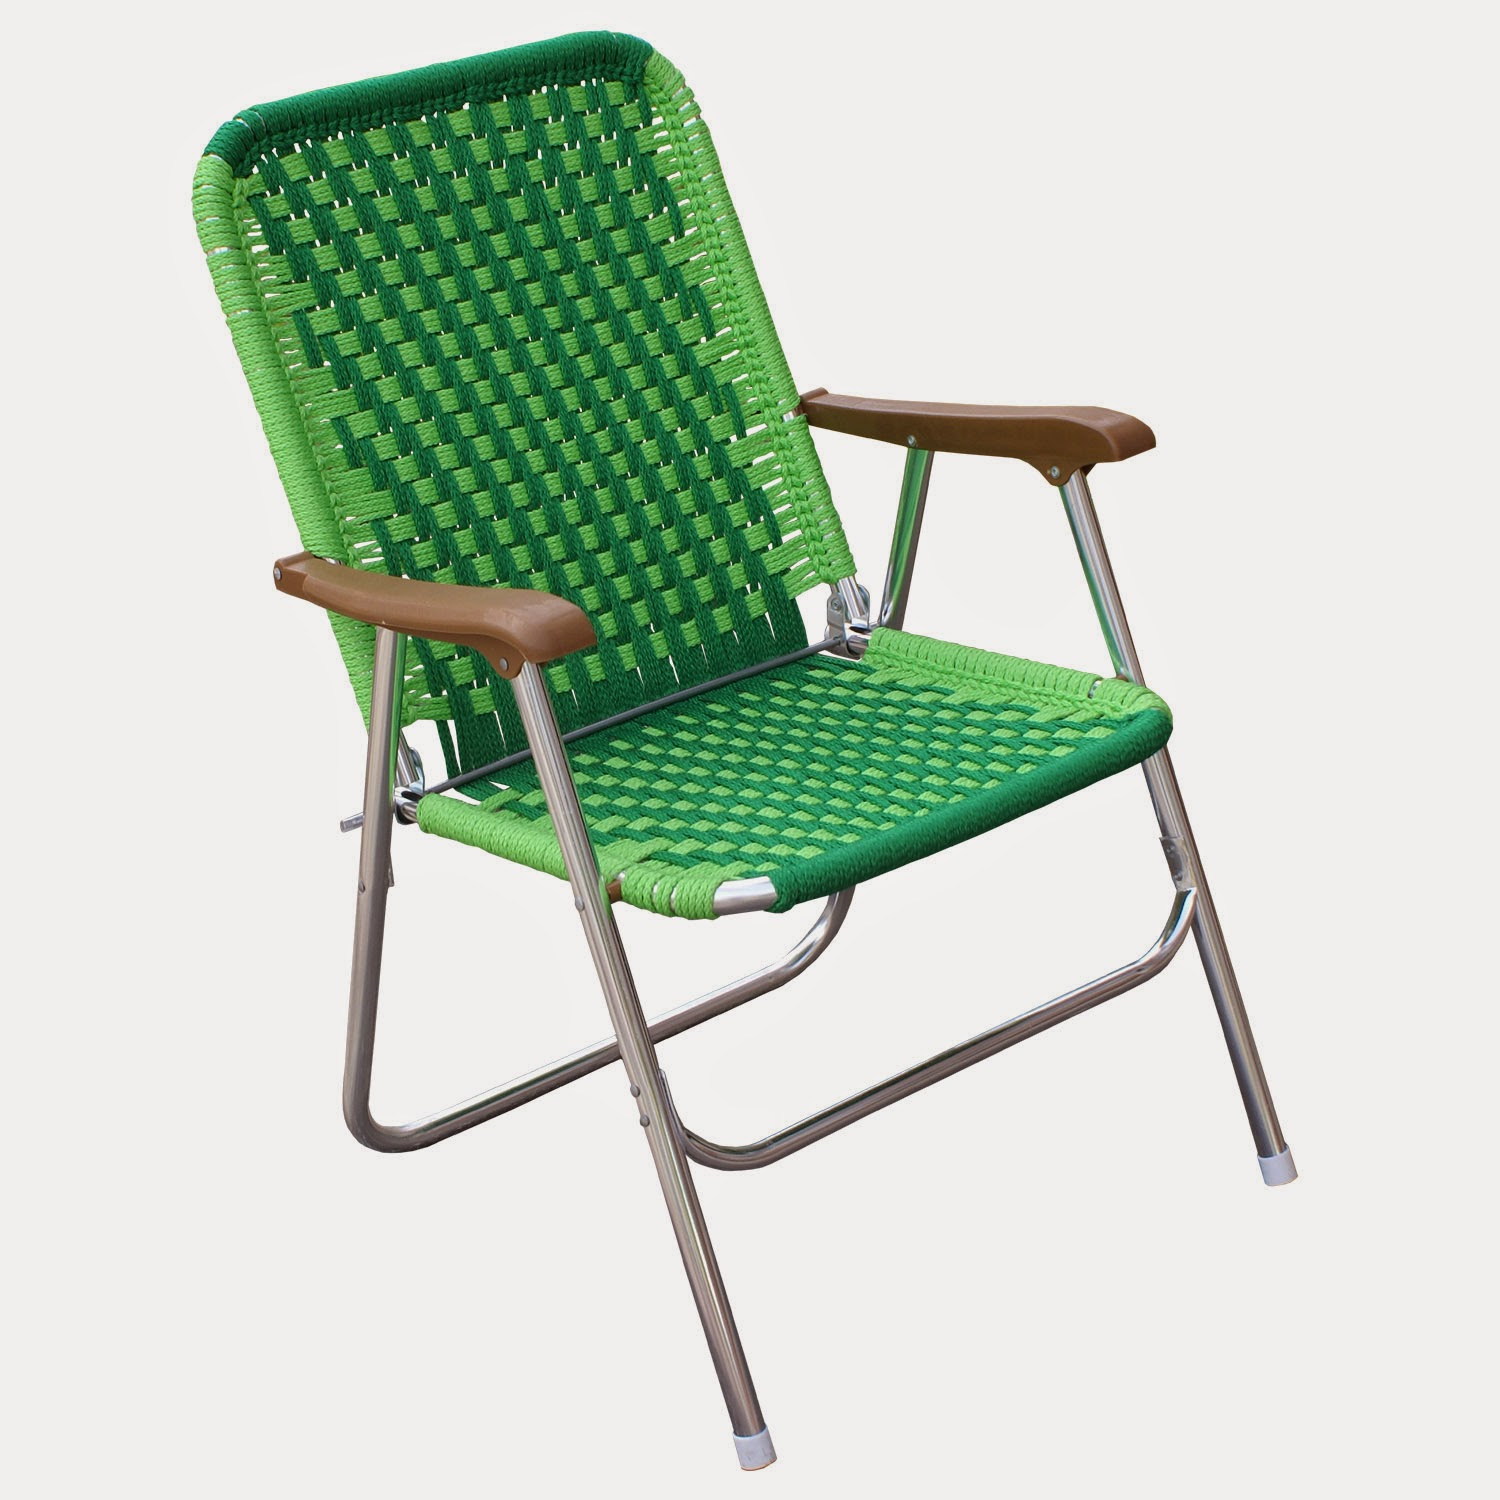 Woven Lawn Chair Frame Pepperell Braiding Company